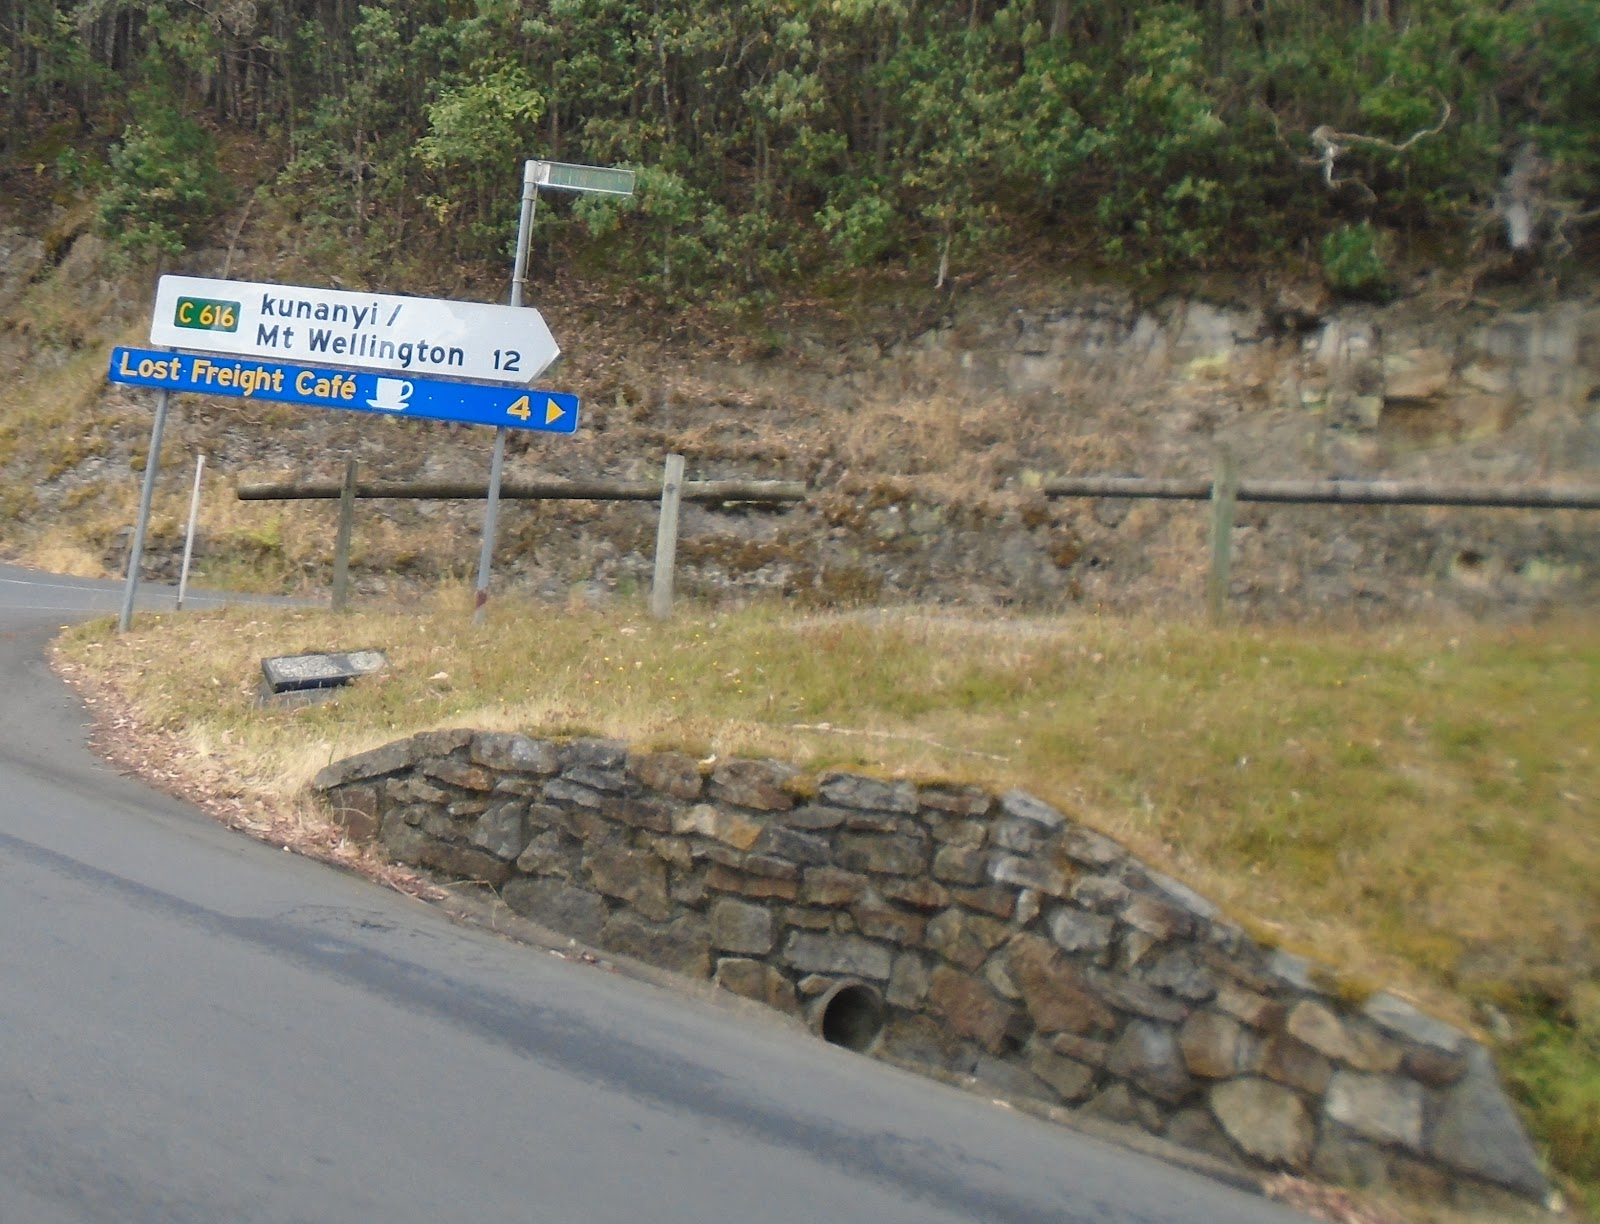 Climbing Mt. Wellington by bike - roadway sign